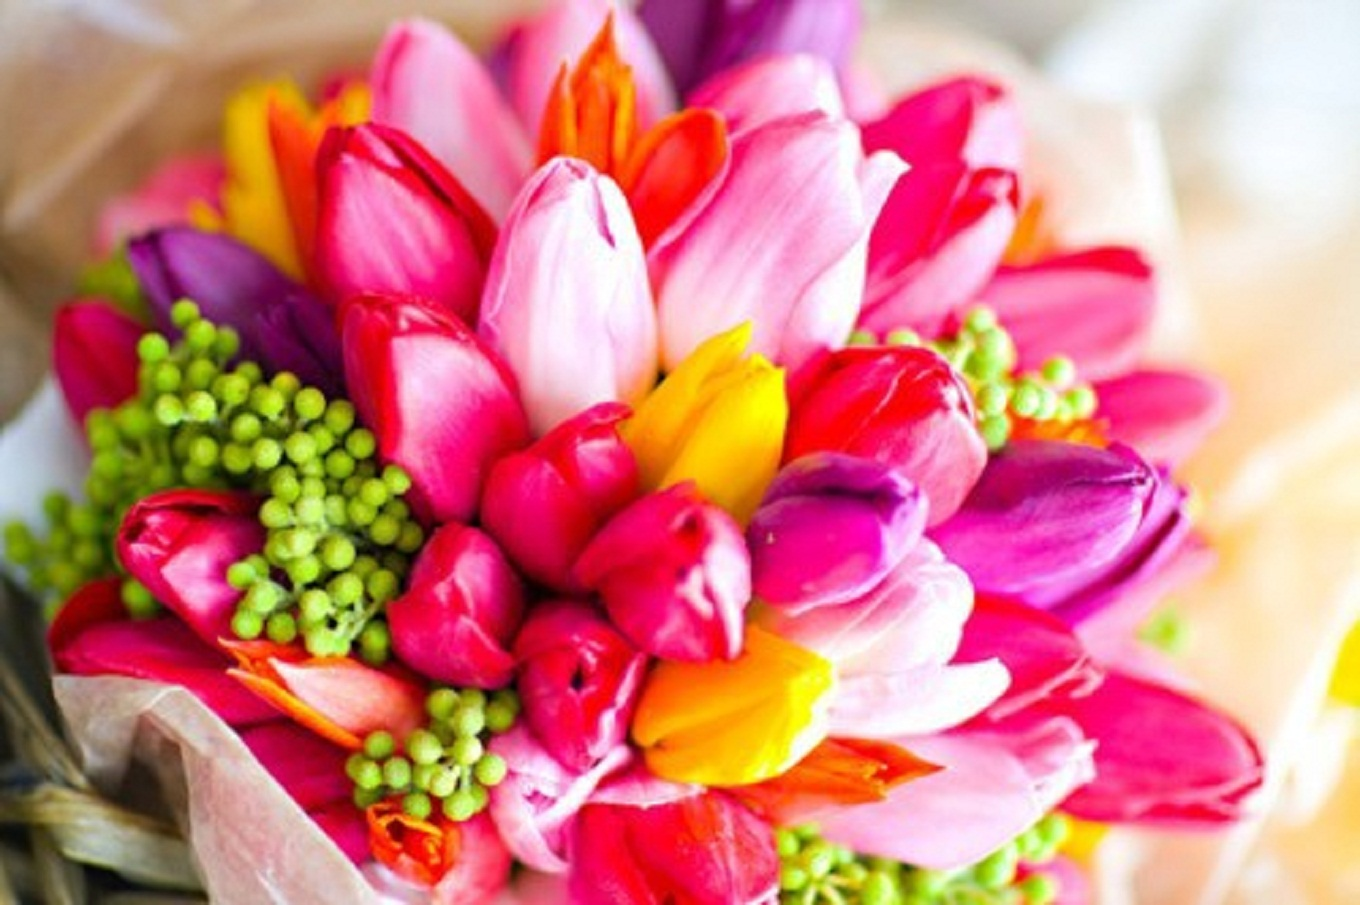 Beautiful Flowers Wallpapers  Android Apps on Google Play 1360x905